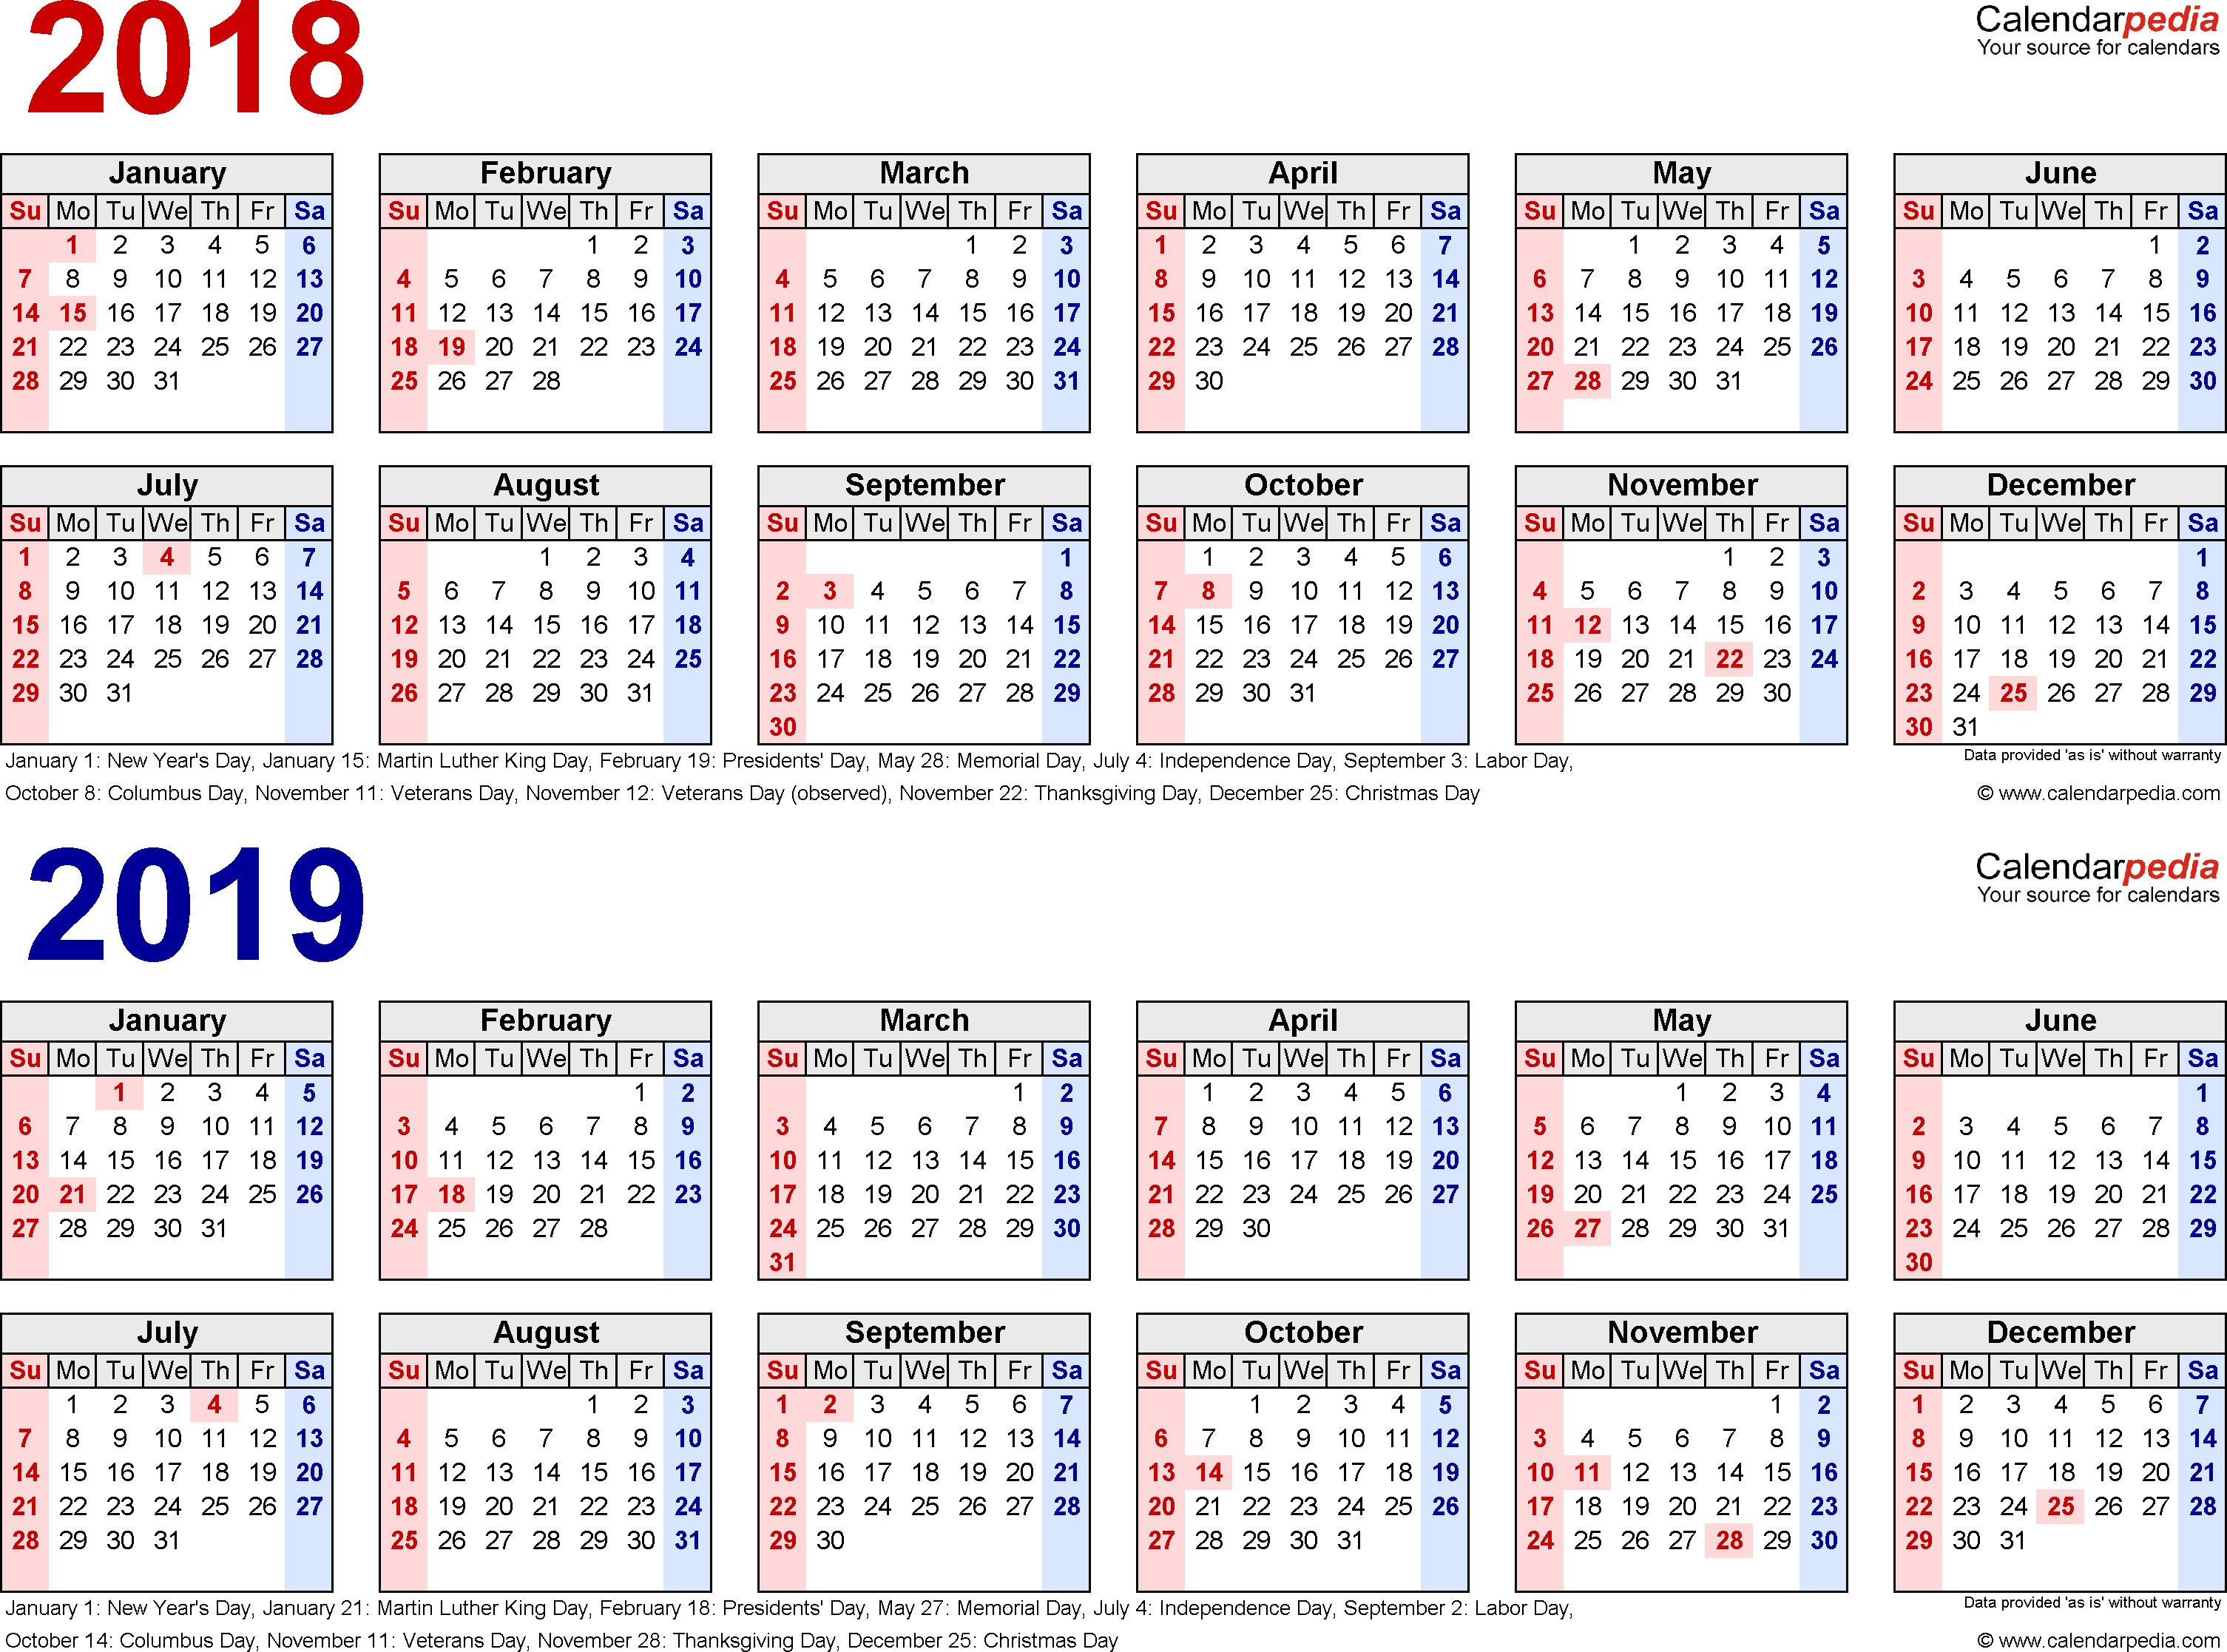 Download Kalender 2019 Excel With 2018 Calendar Free Printable Two Year Calendars